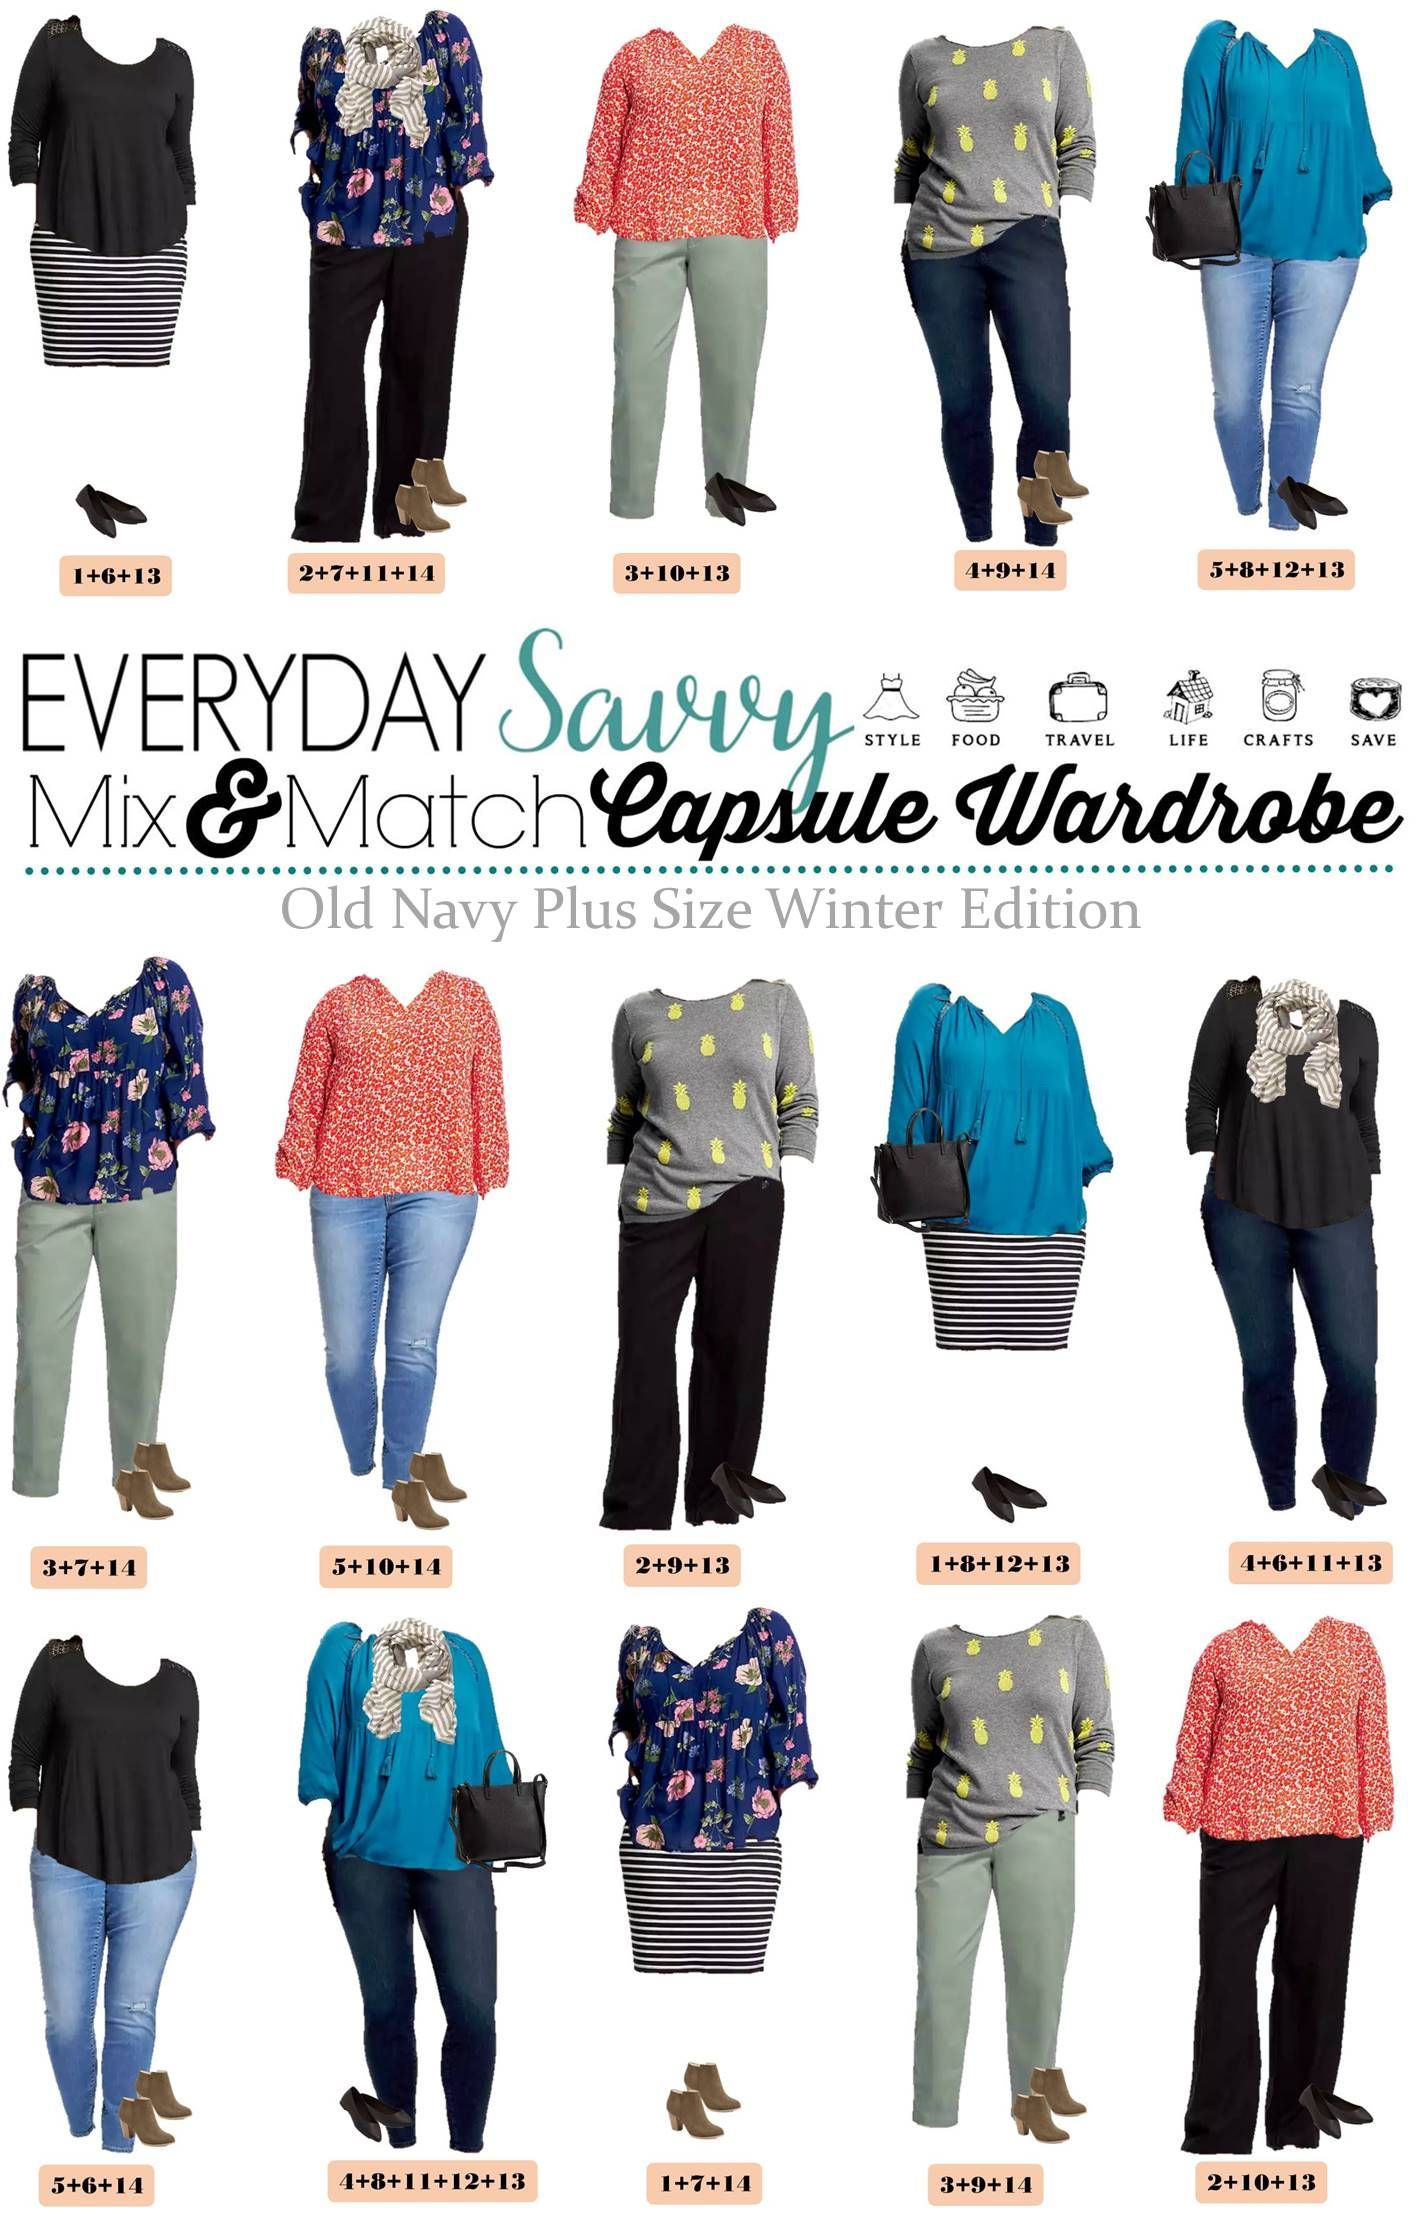 b38e60c3290 This Old Navy Plus Size Capsule Wardrobe is perfect for mix and match  outfits for winter through spring. Love the pineapple sweater! via   everydaysavvy